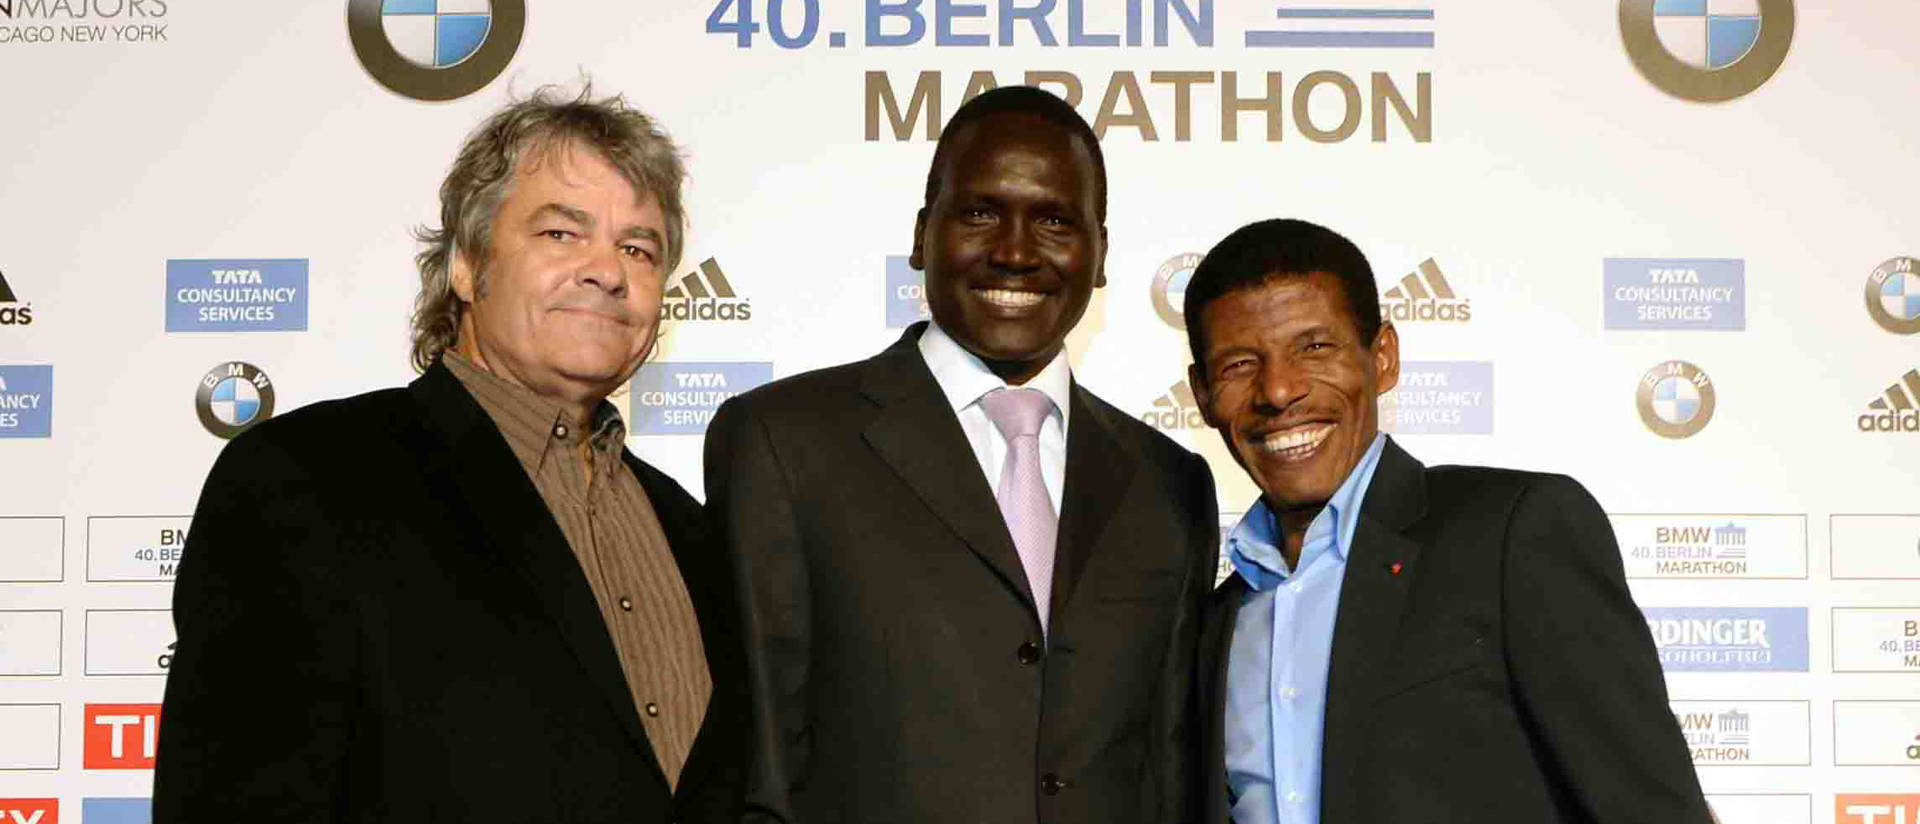 Photo of Dr. Sean Hartnett, UW-Eau Claire professor of geography, standing with marathoners Paul Tergat, center, and Haile Gebrselassie at a 2011 celebration of world record holders at the 2011 Berlin Marathon.